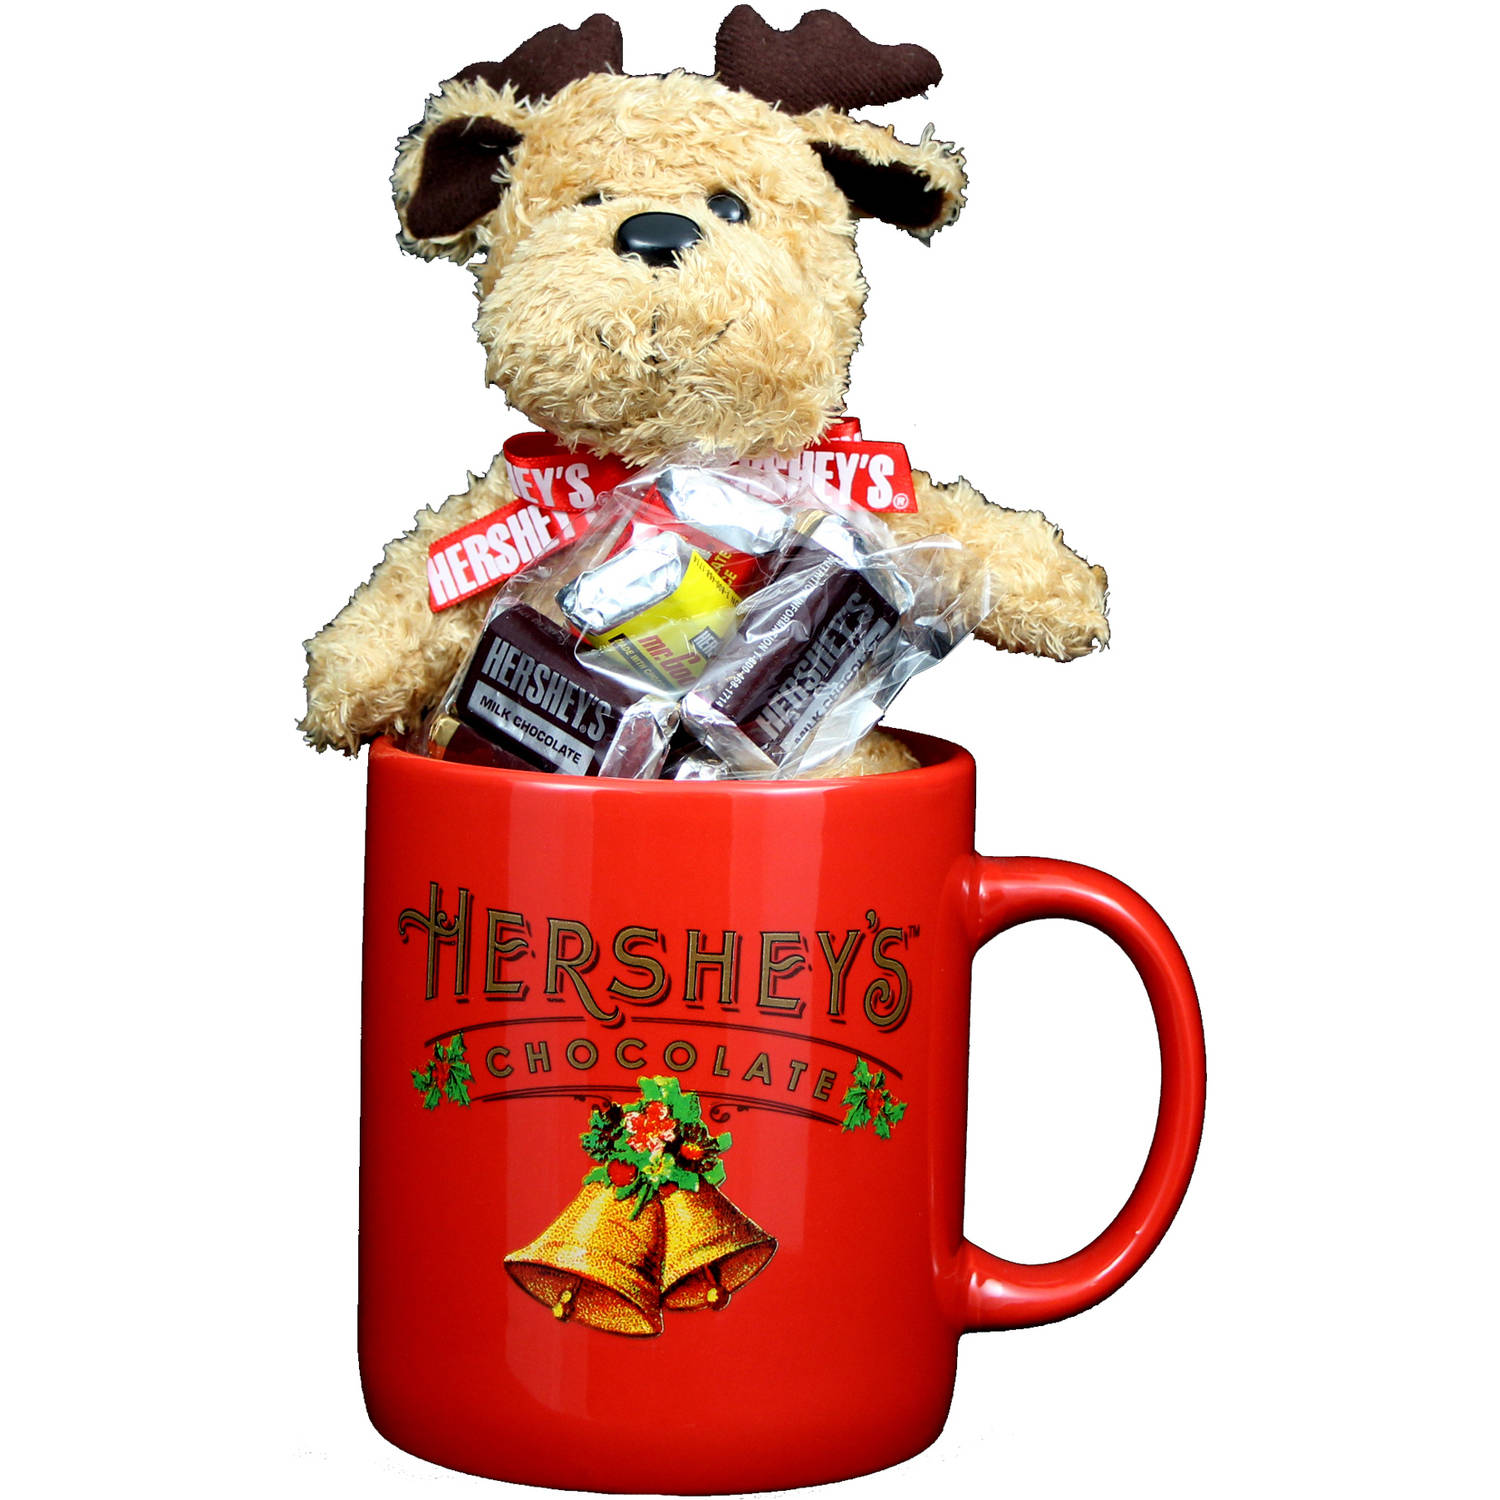 Galerie Hershey's Red Jumbo Mug with Plush and Milk Chocolate Candy